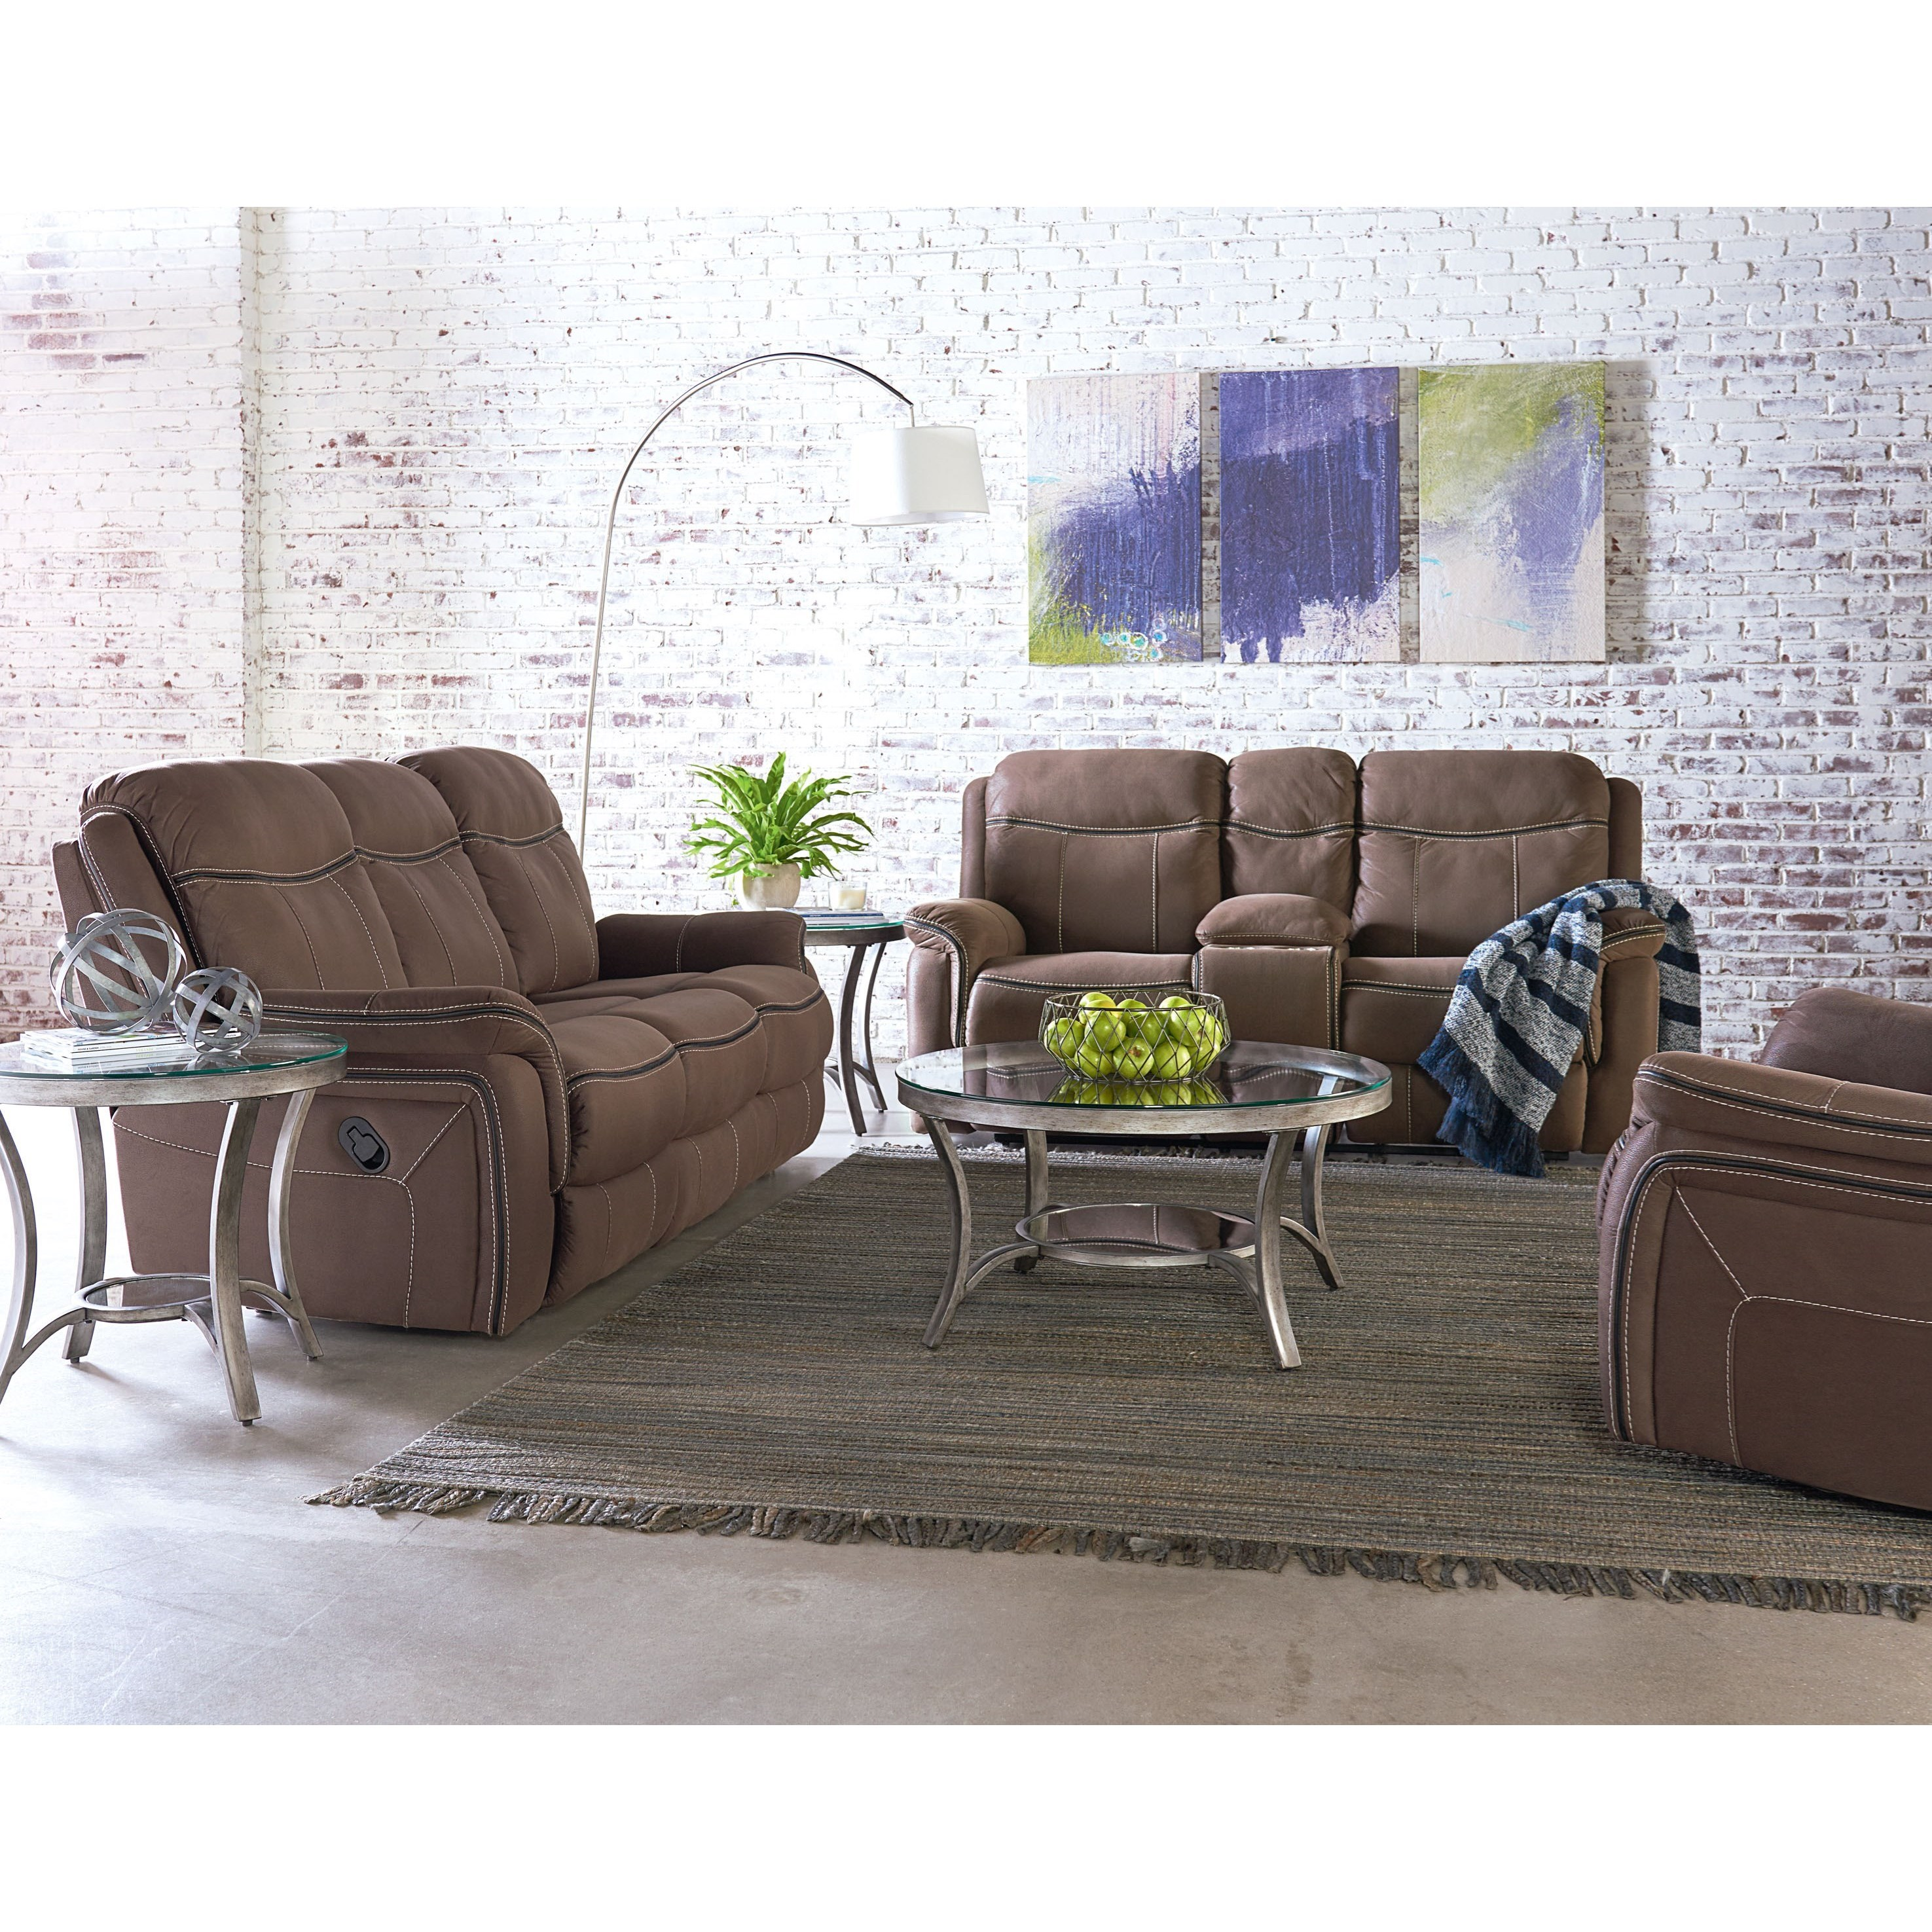 Cole Occasional Table Group by Standard Furniture at Rooms for Less